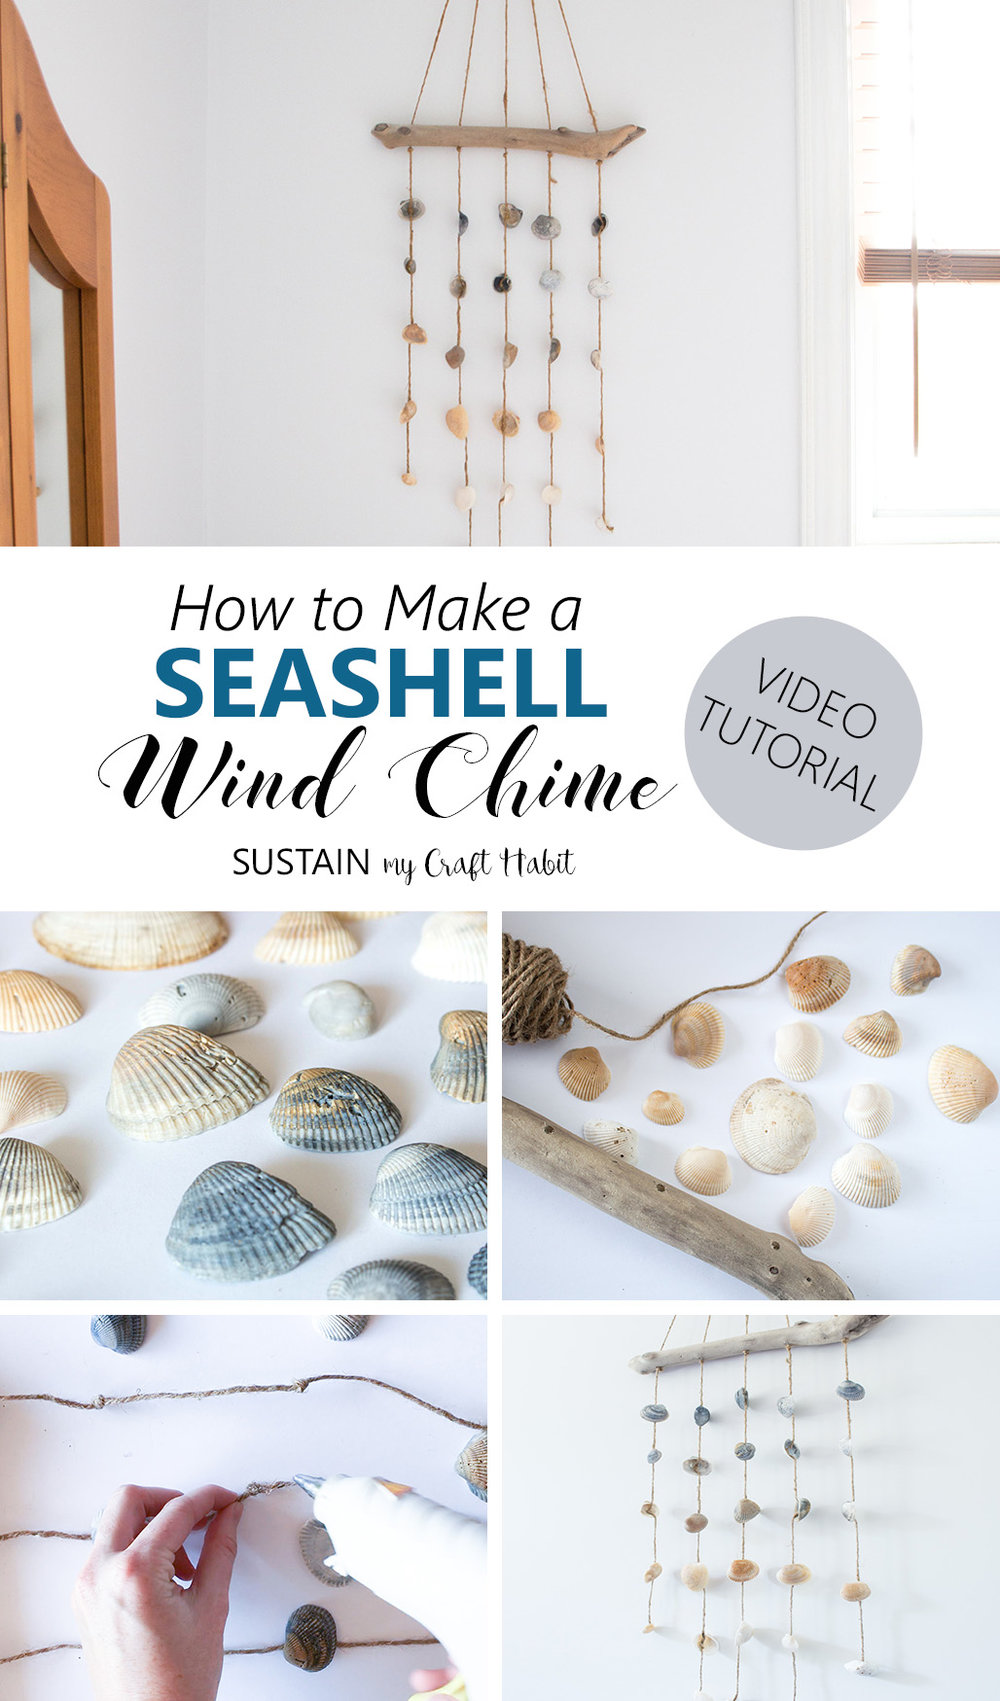 This seashell wind chime is so easy to make and can be used indoors as acoastal cottage décor idea for your bedroom wall. A quick video tutorial for this easy nautical DIY decorating idea is included!